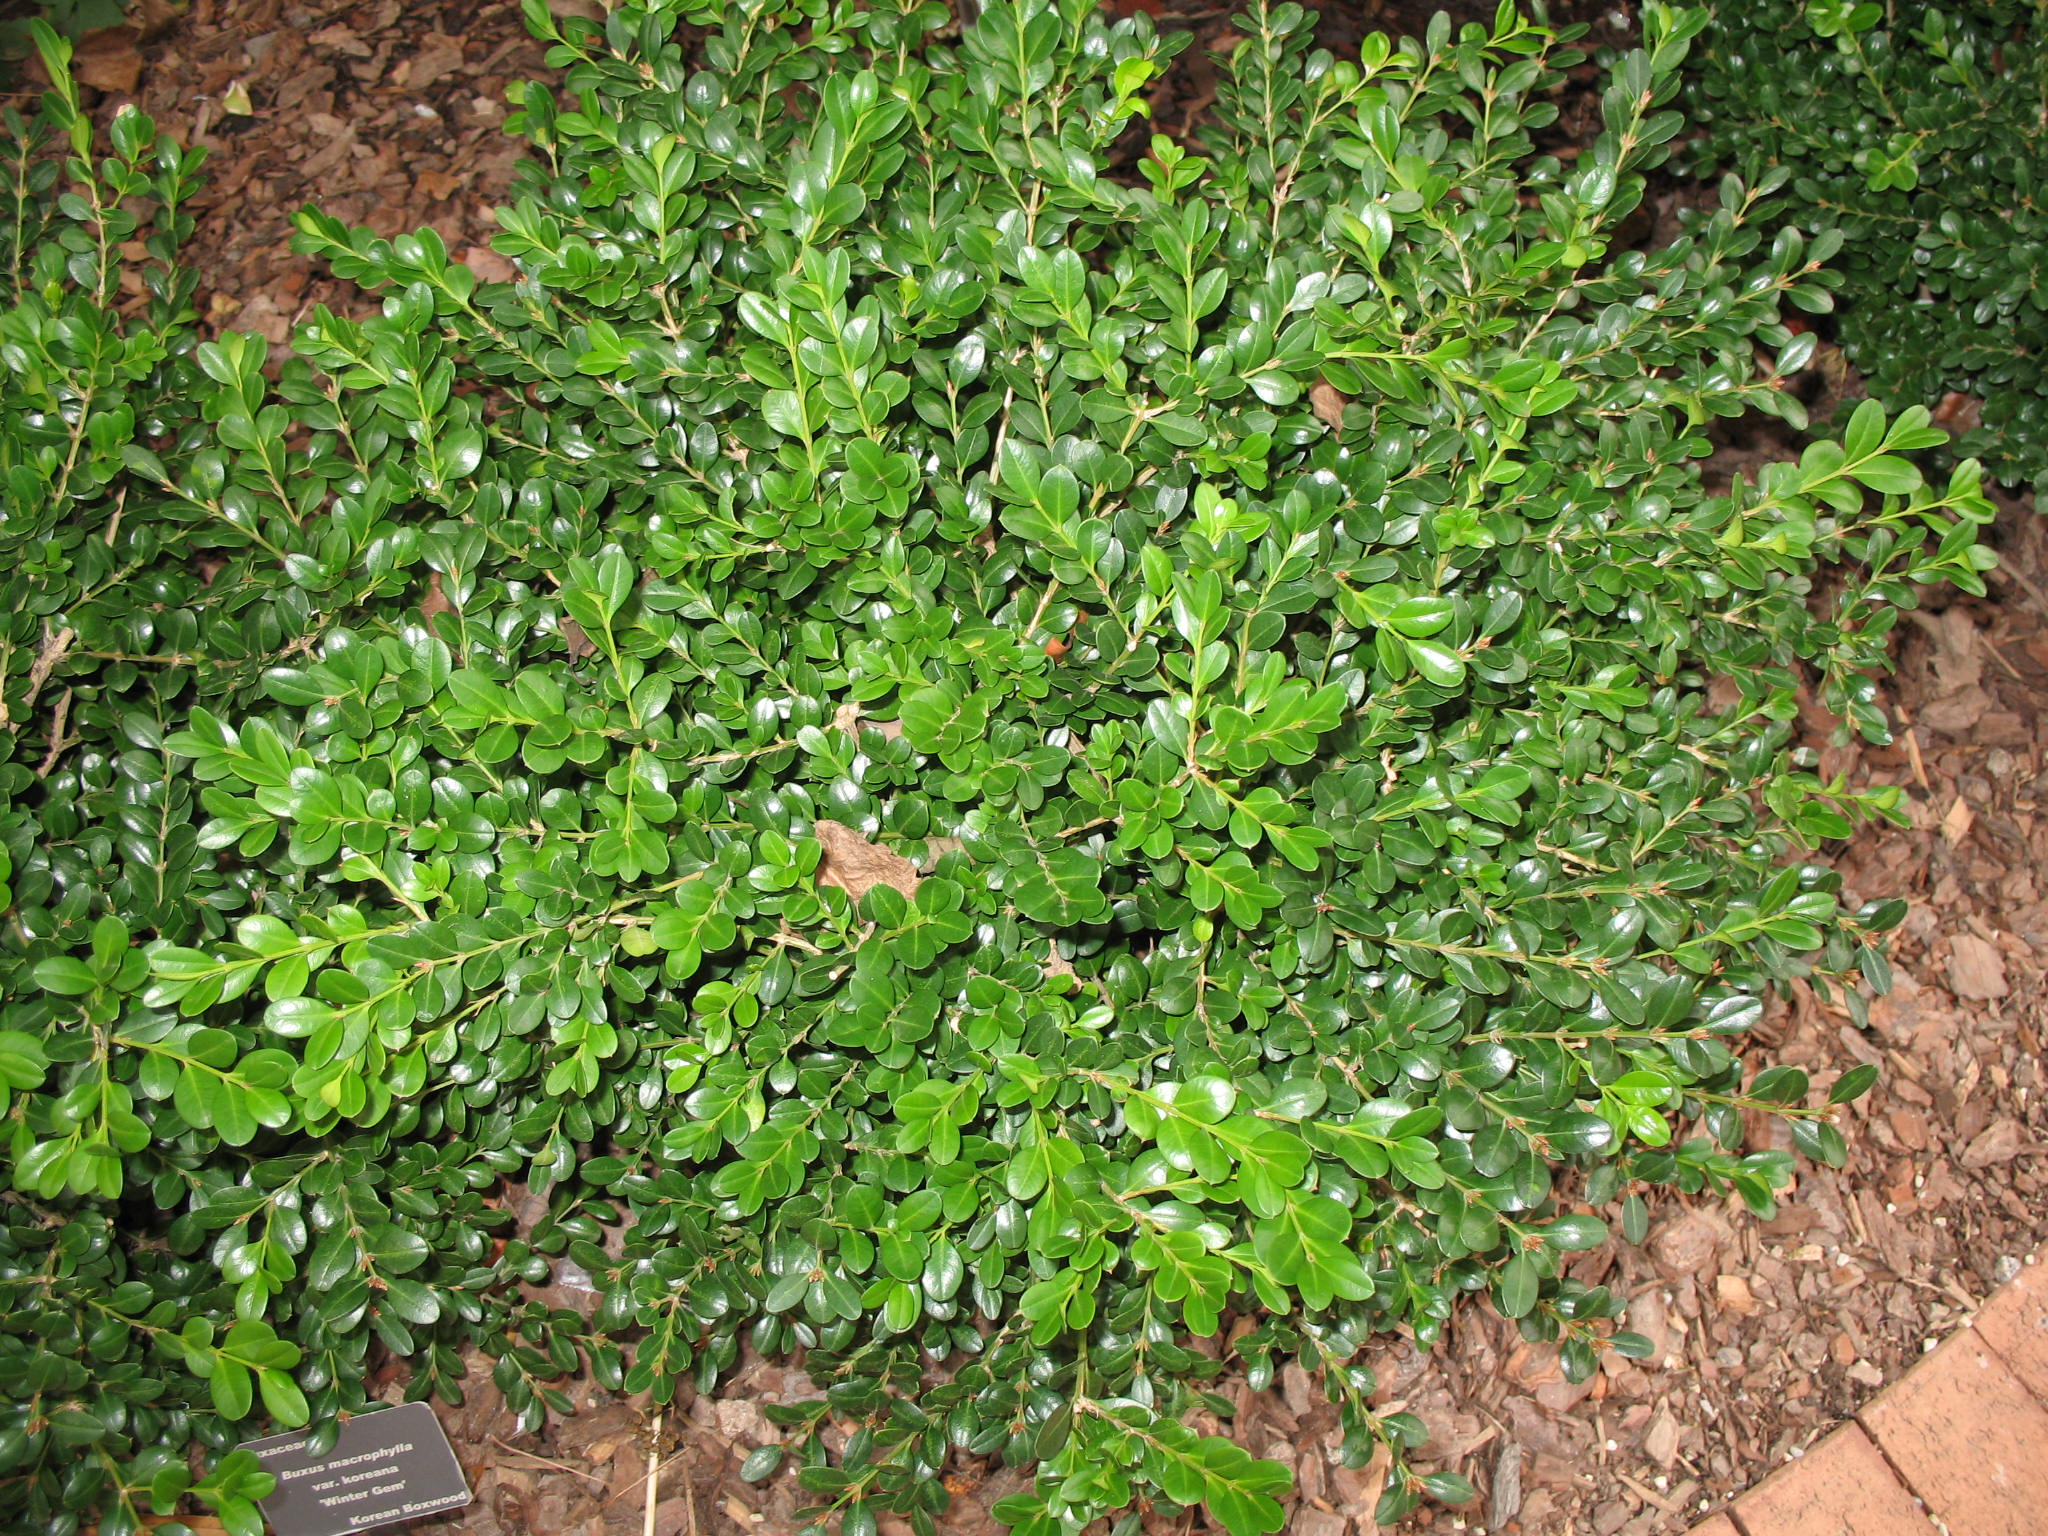 Buxus microphylla var. koreana 'Winter Gem'   / Buxus microphylla var. koreana 'Winter Gem'